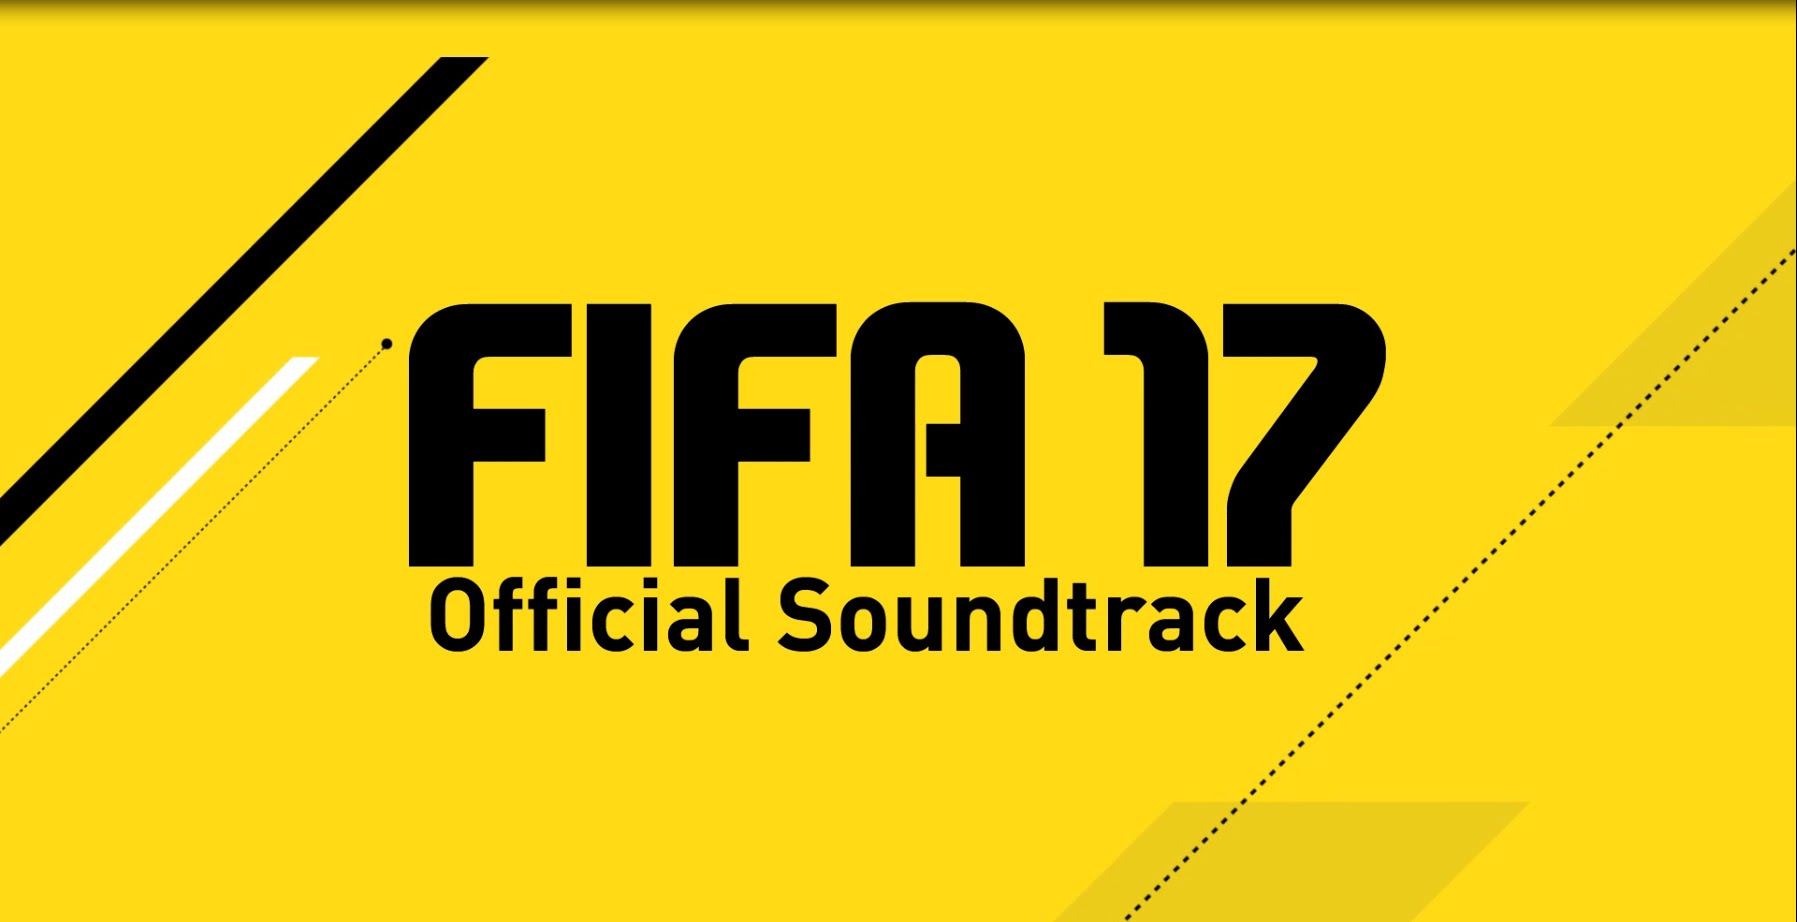 The FIFA 17 Soundtrack